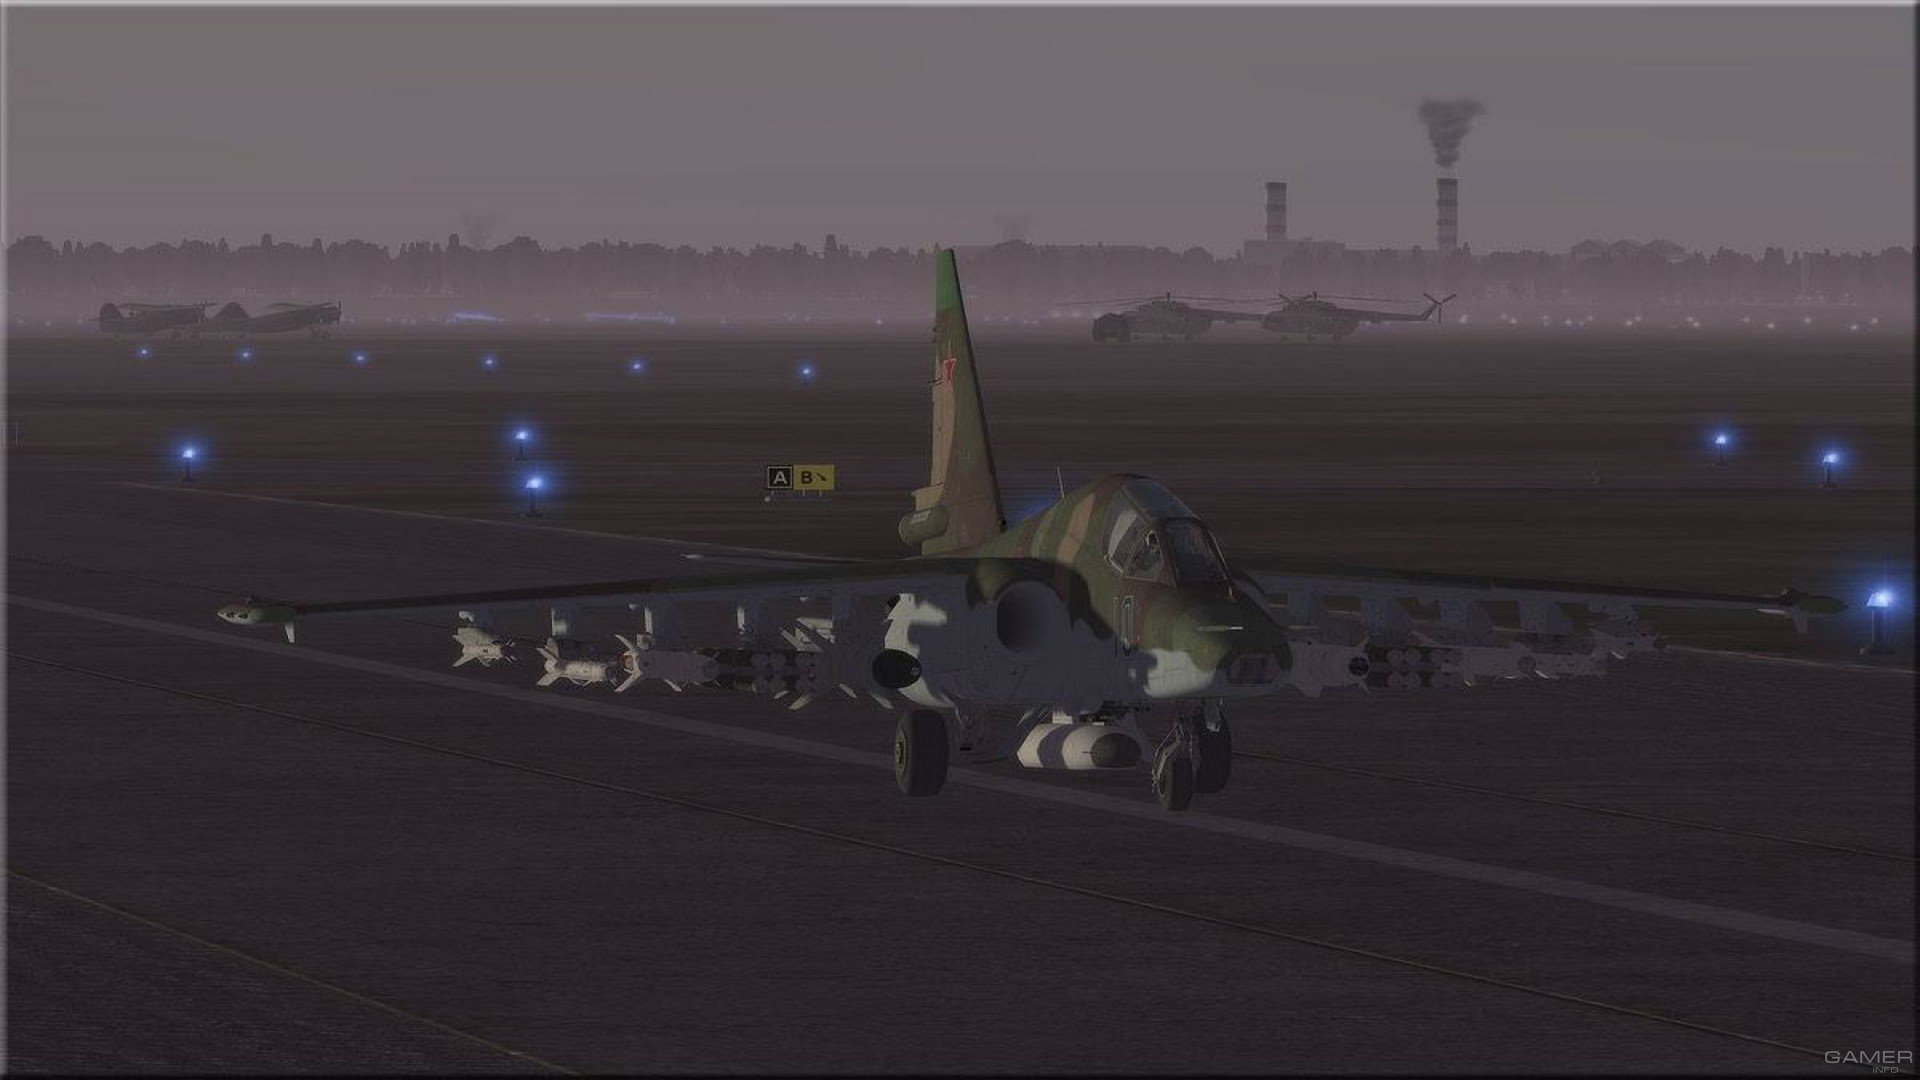 DCS World (2008 video game)